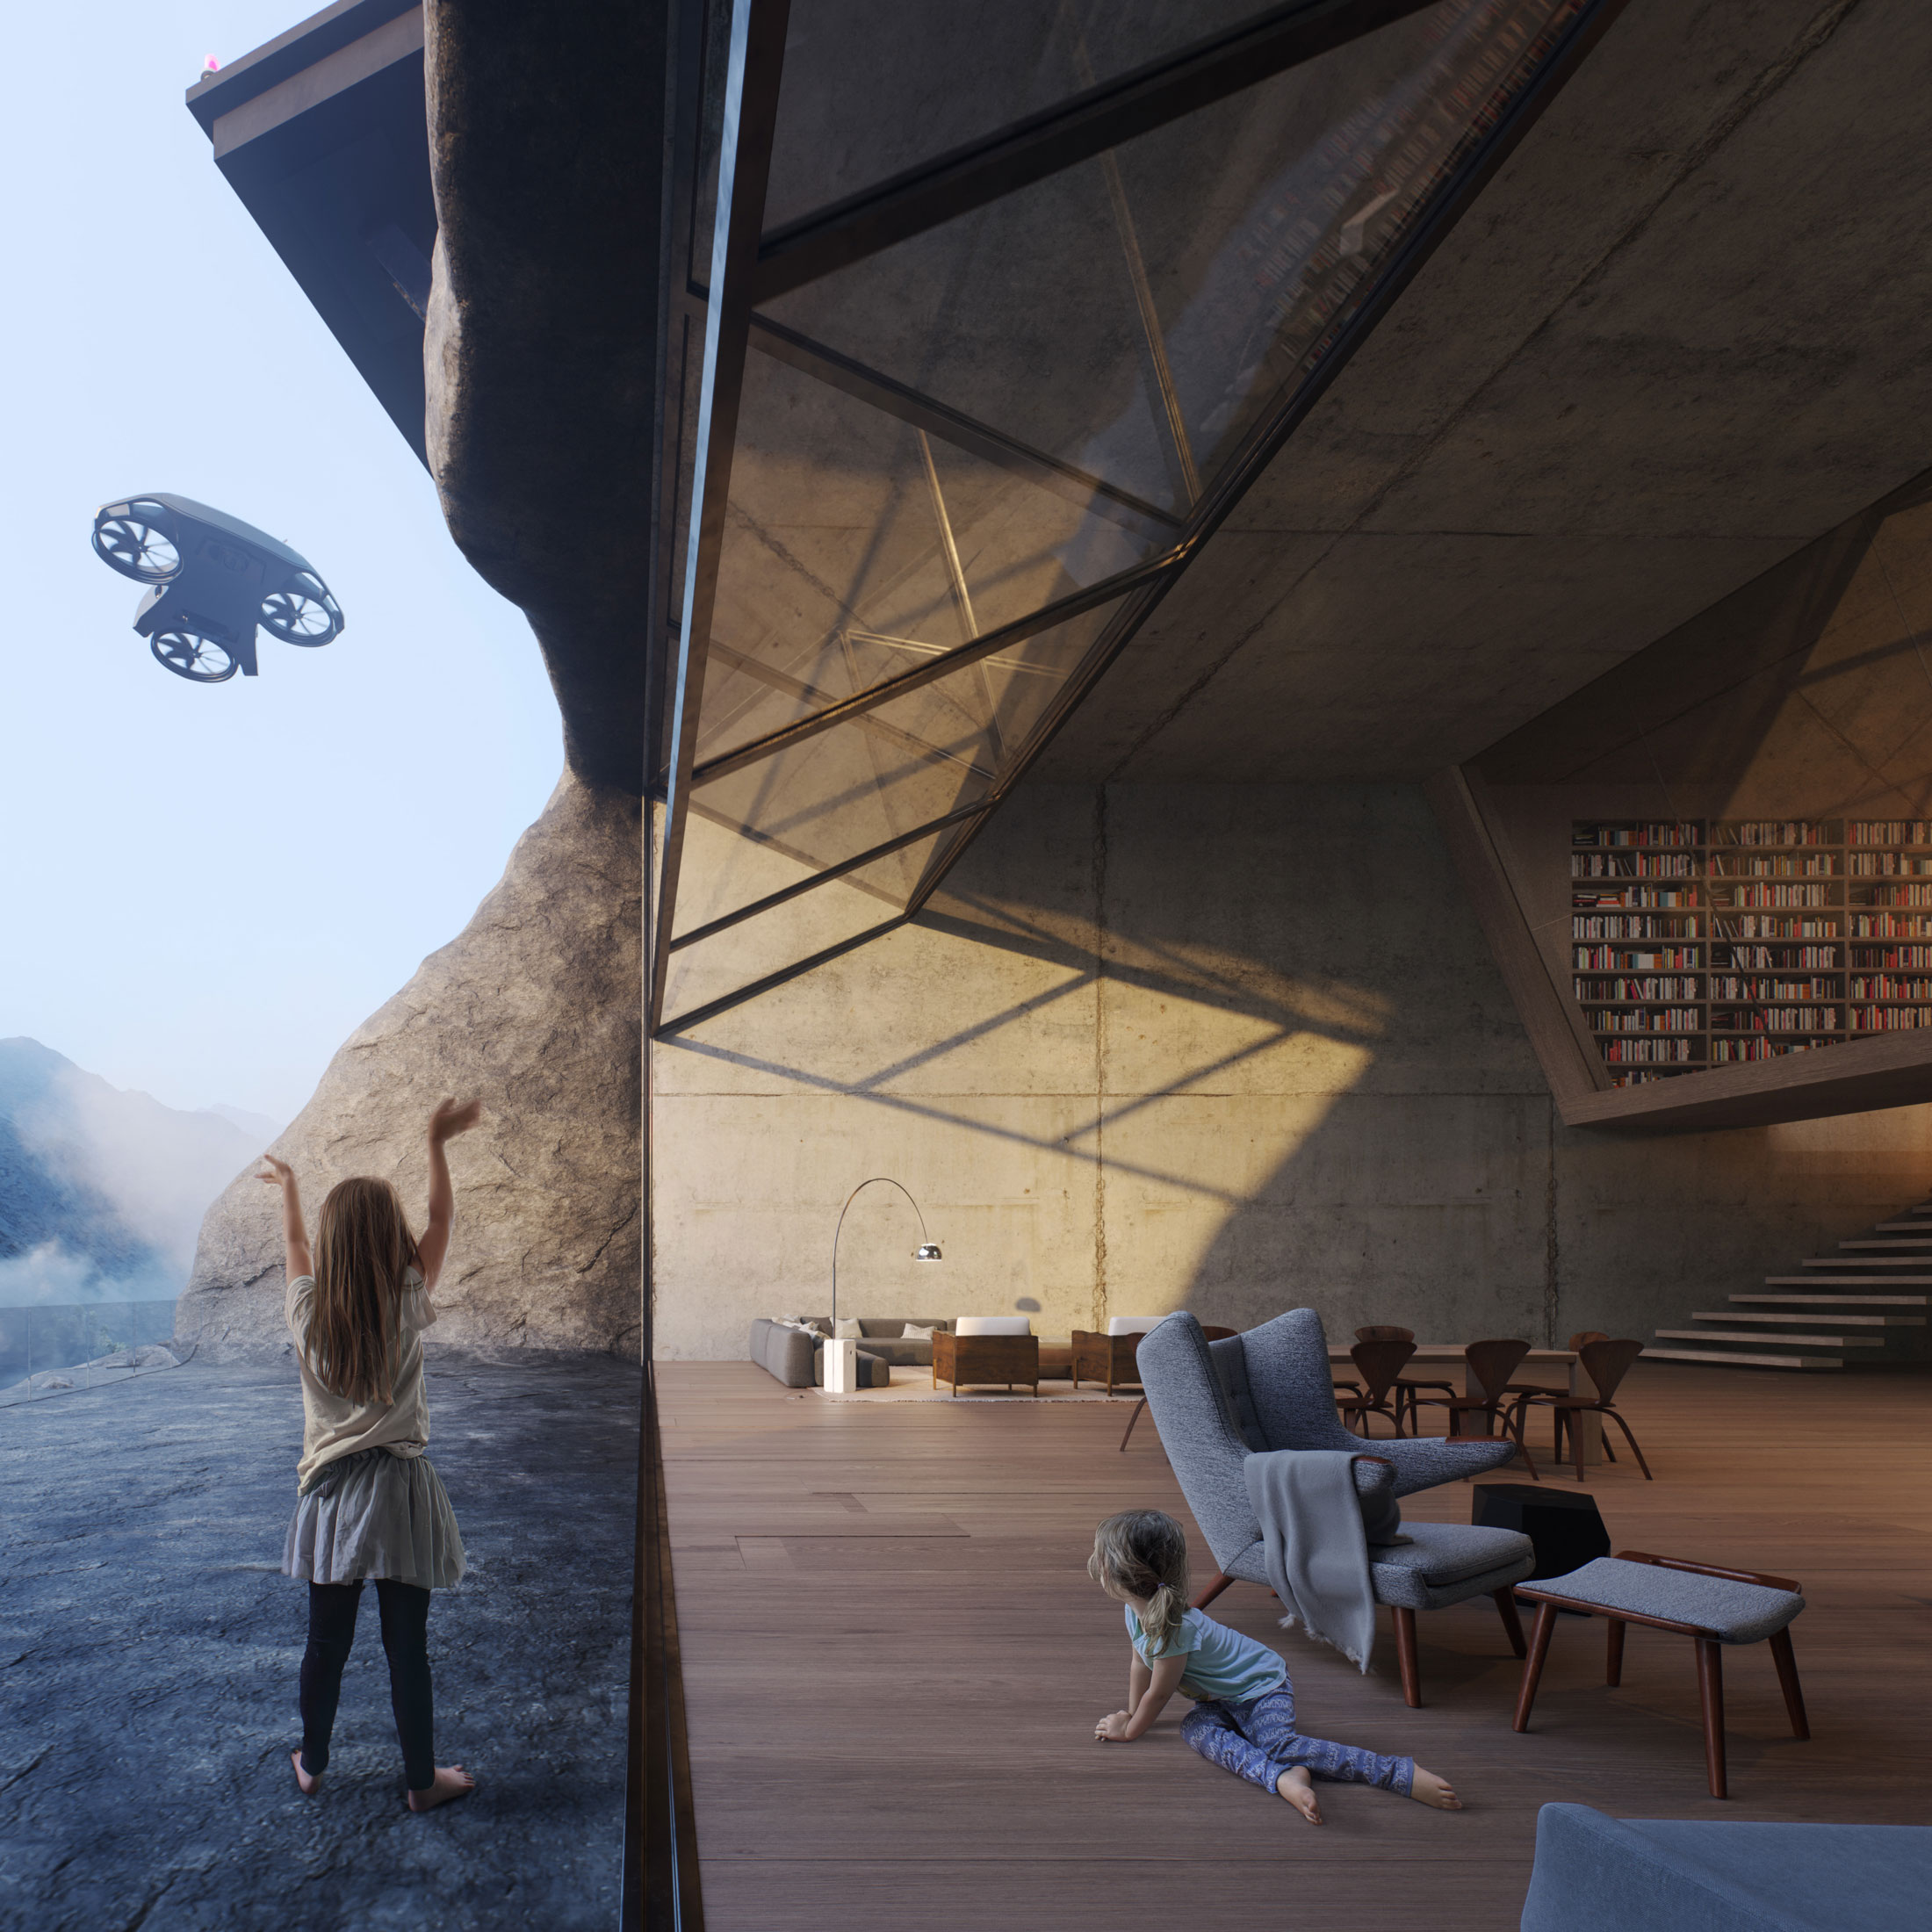 Architectural Rendering for the Paramo film made by Moso Lab